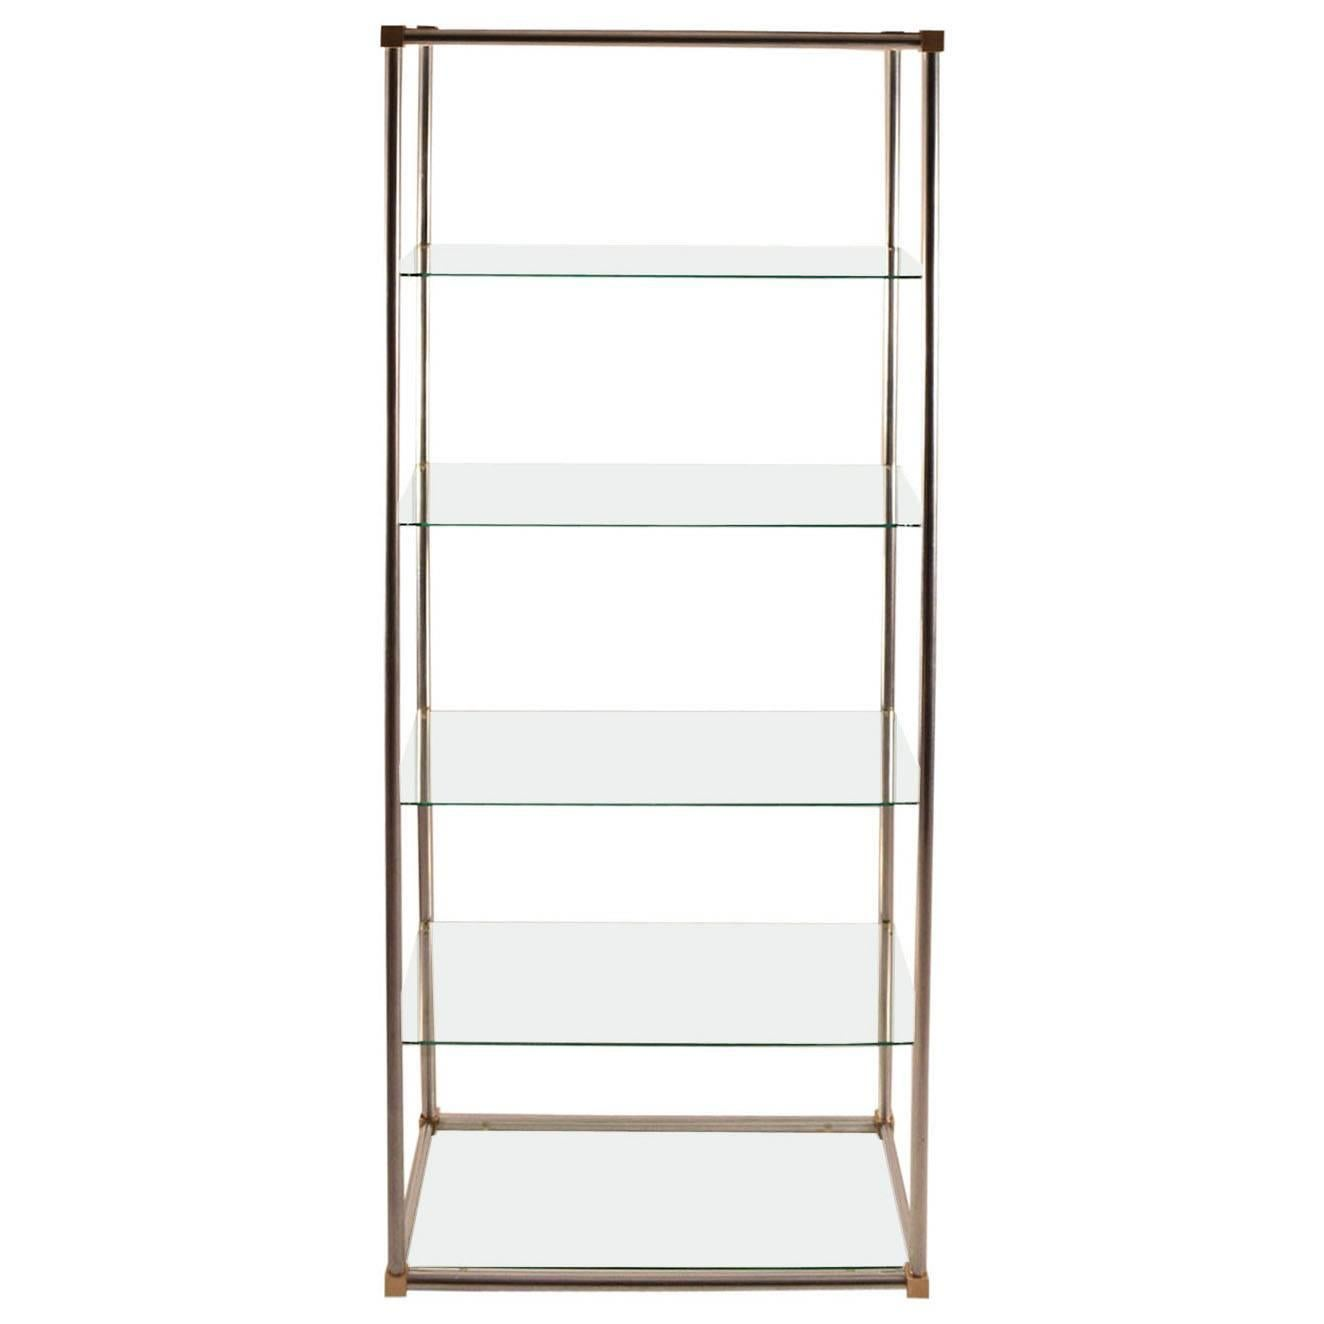 Aluminum / Brass and Glass Etagere, Vitrine by Vesey